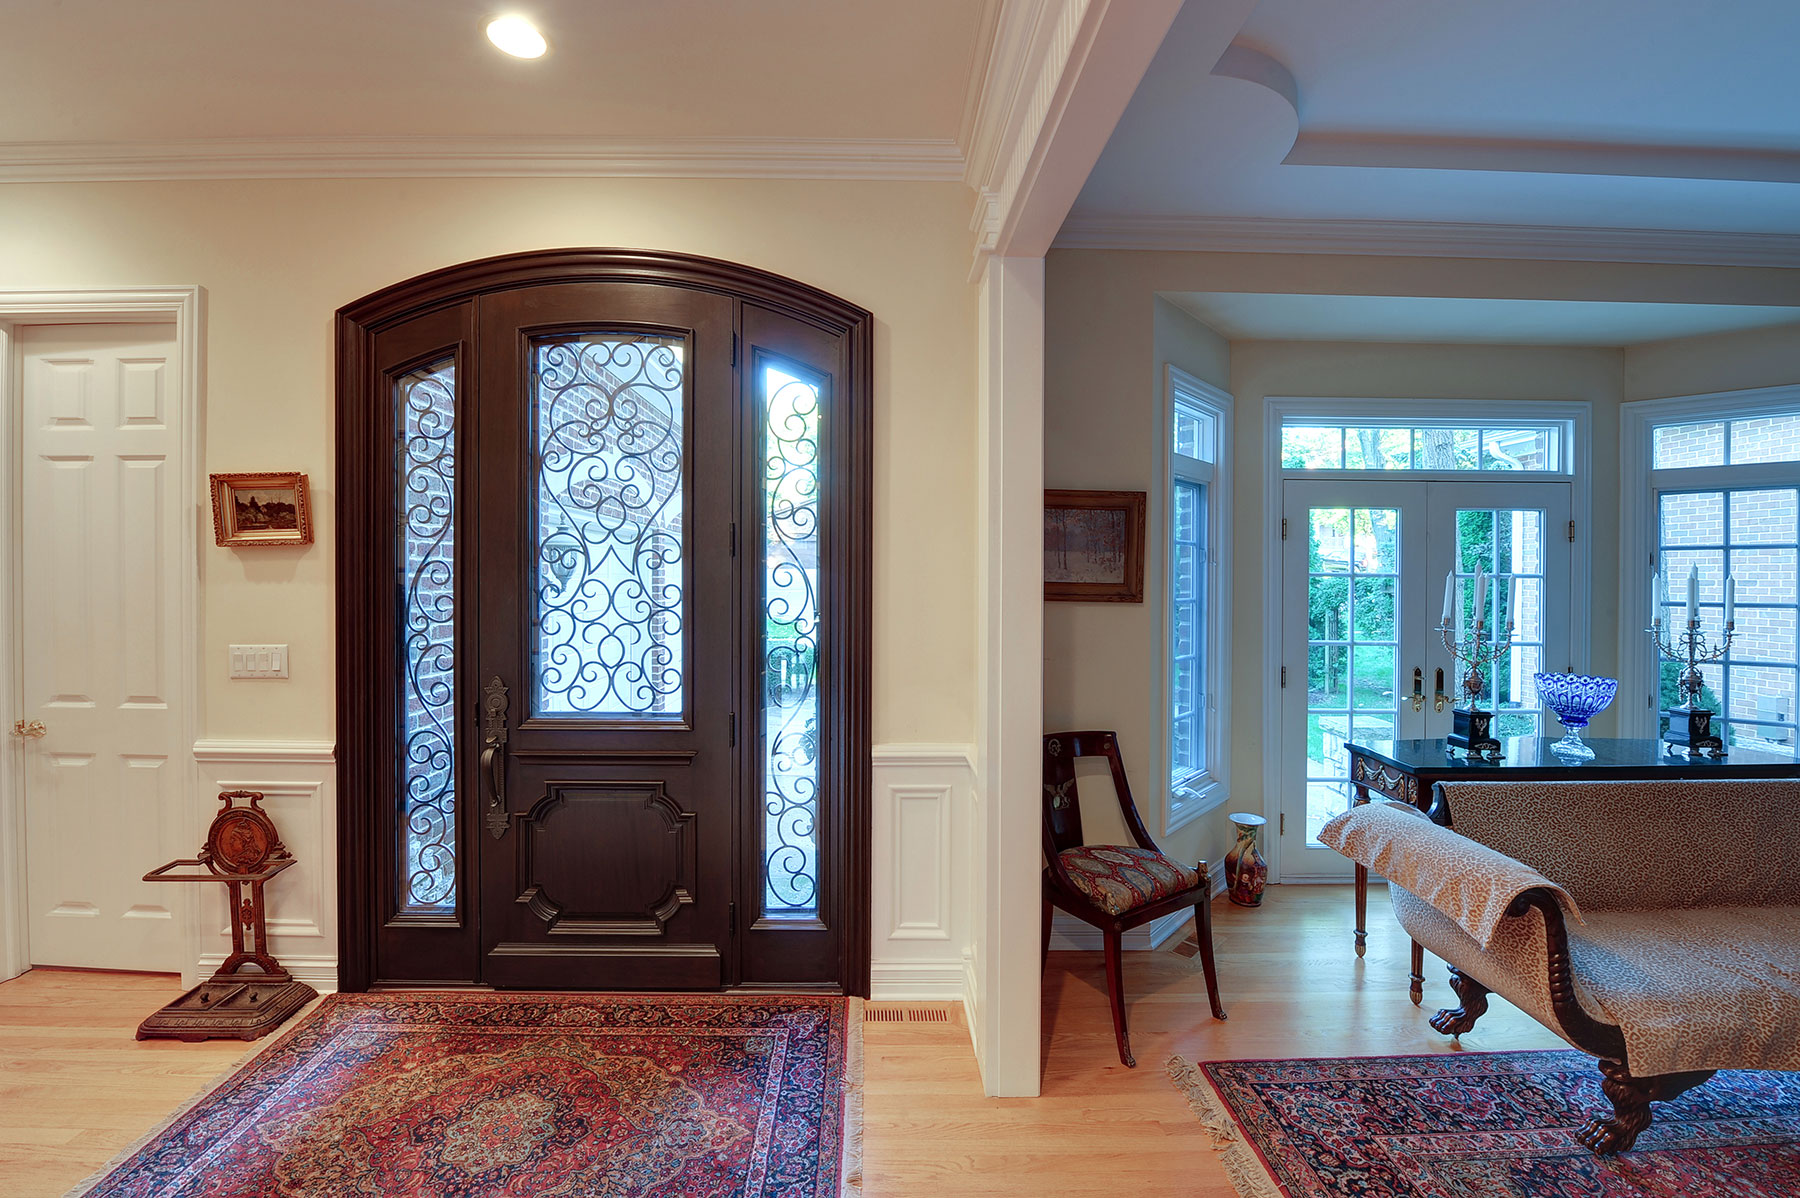 Custom Wood Front Entry Doors | Custom Solid Mahogany Wood Door with Two Sidelites and Wrought Iron, Heritage Collection, Interior View DB-H003 2SL F CST - Glenview Doors - Custom Doors in Chicago